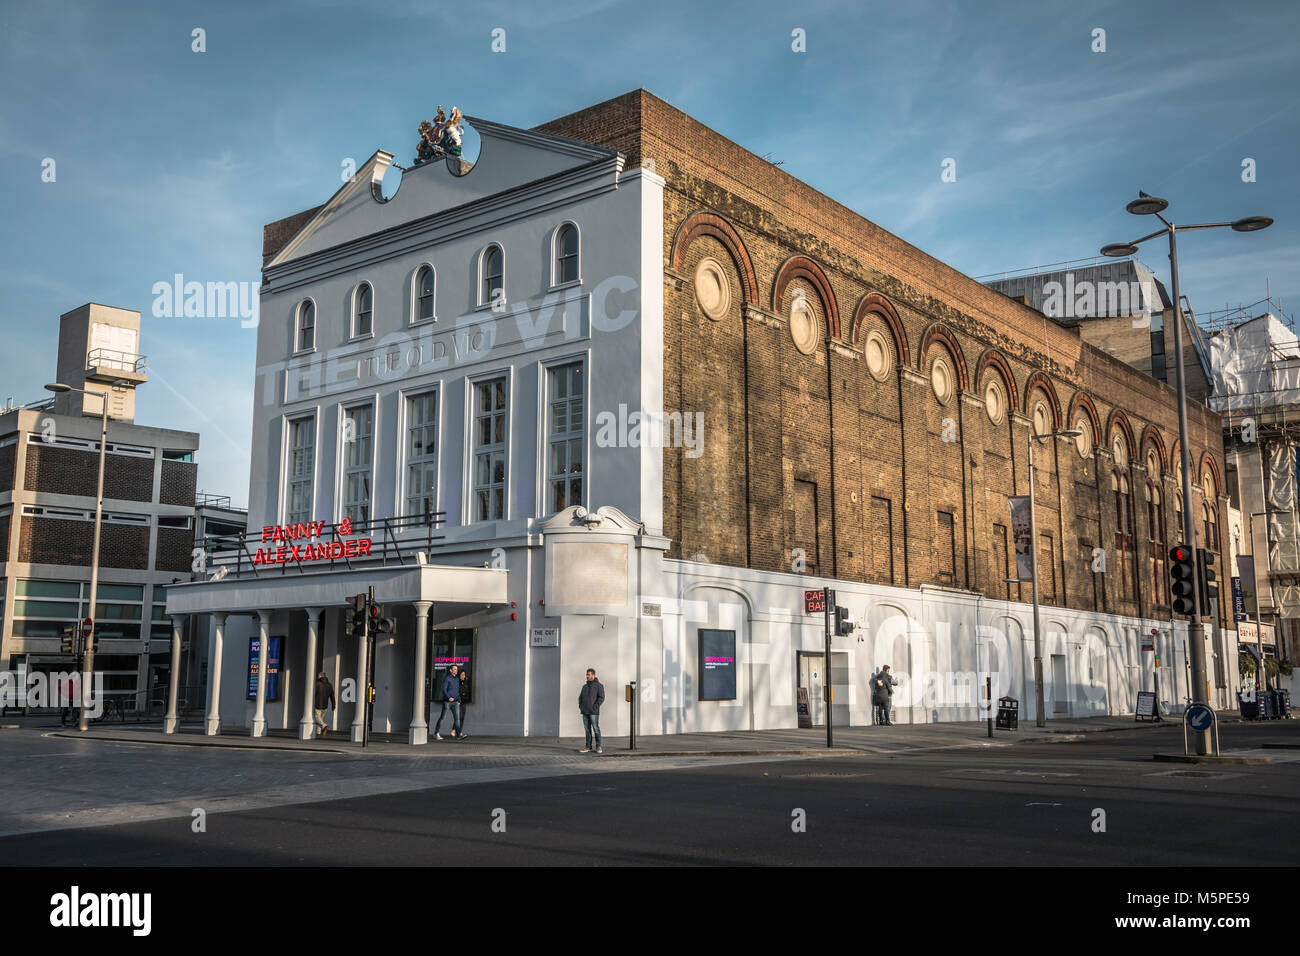 Ingmar Bergman's Fanny and Alexander at The Old Vic theatre on the Cut, Waterloo, London, UK - Stock Image